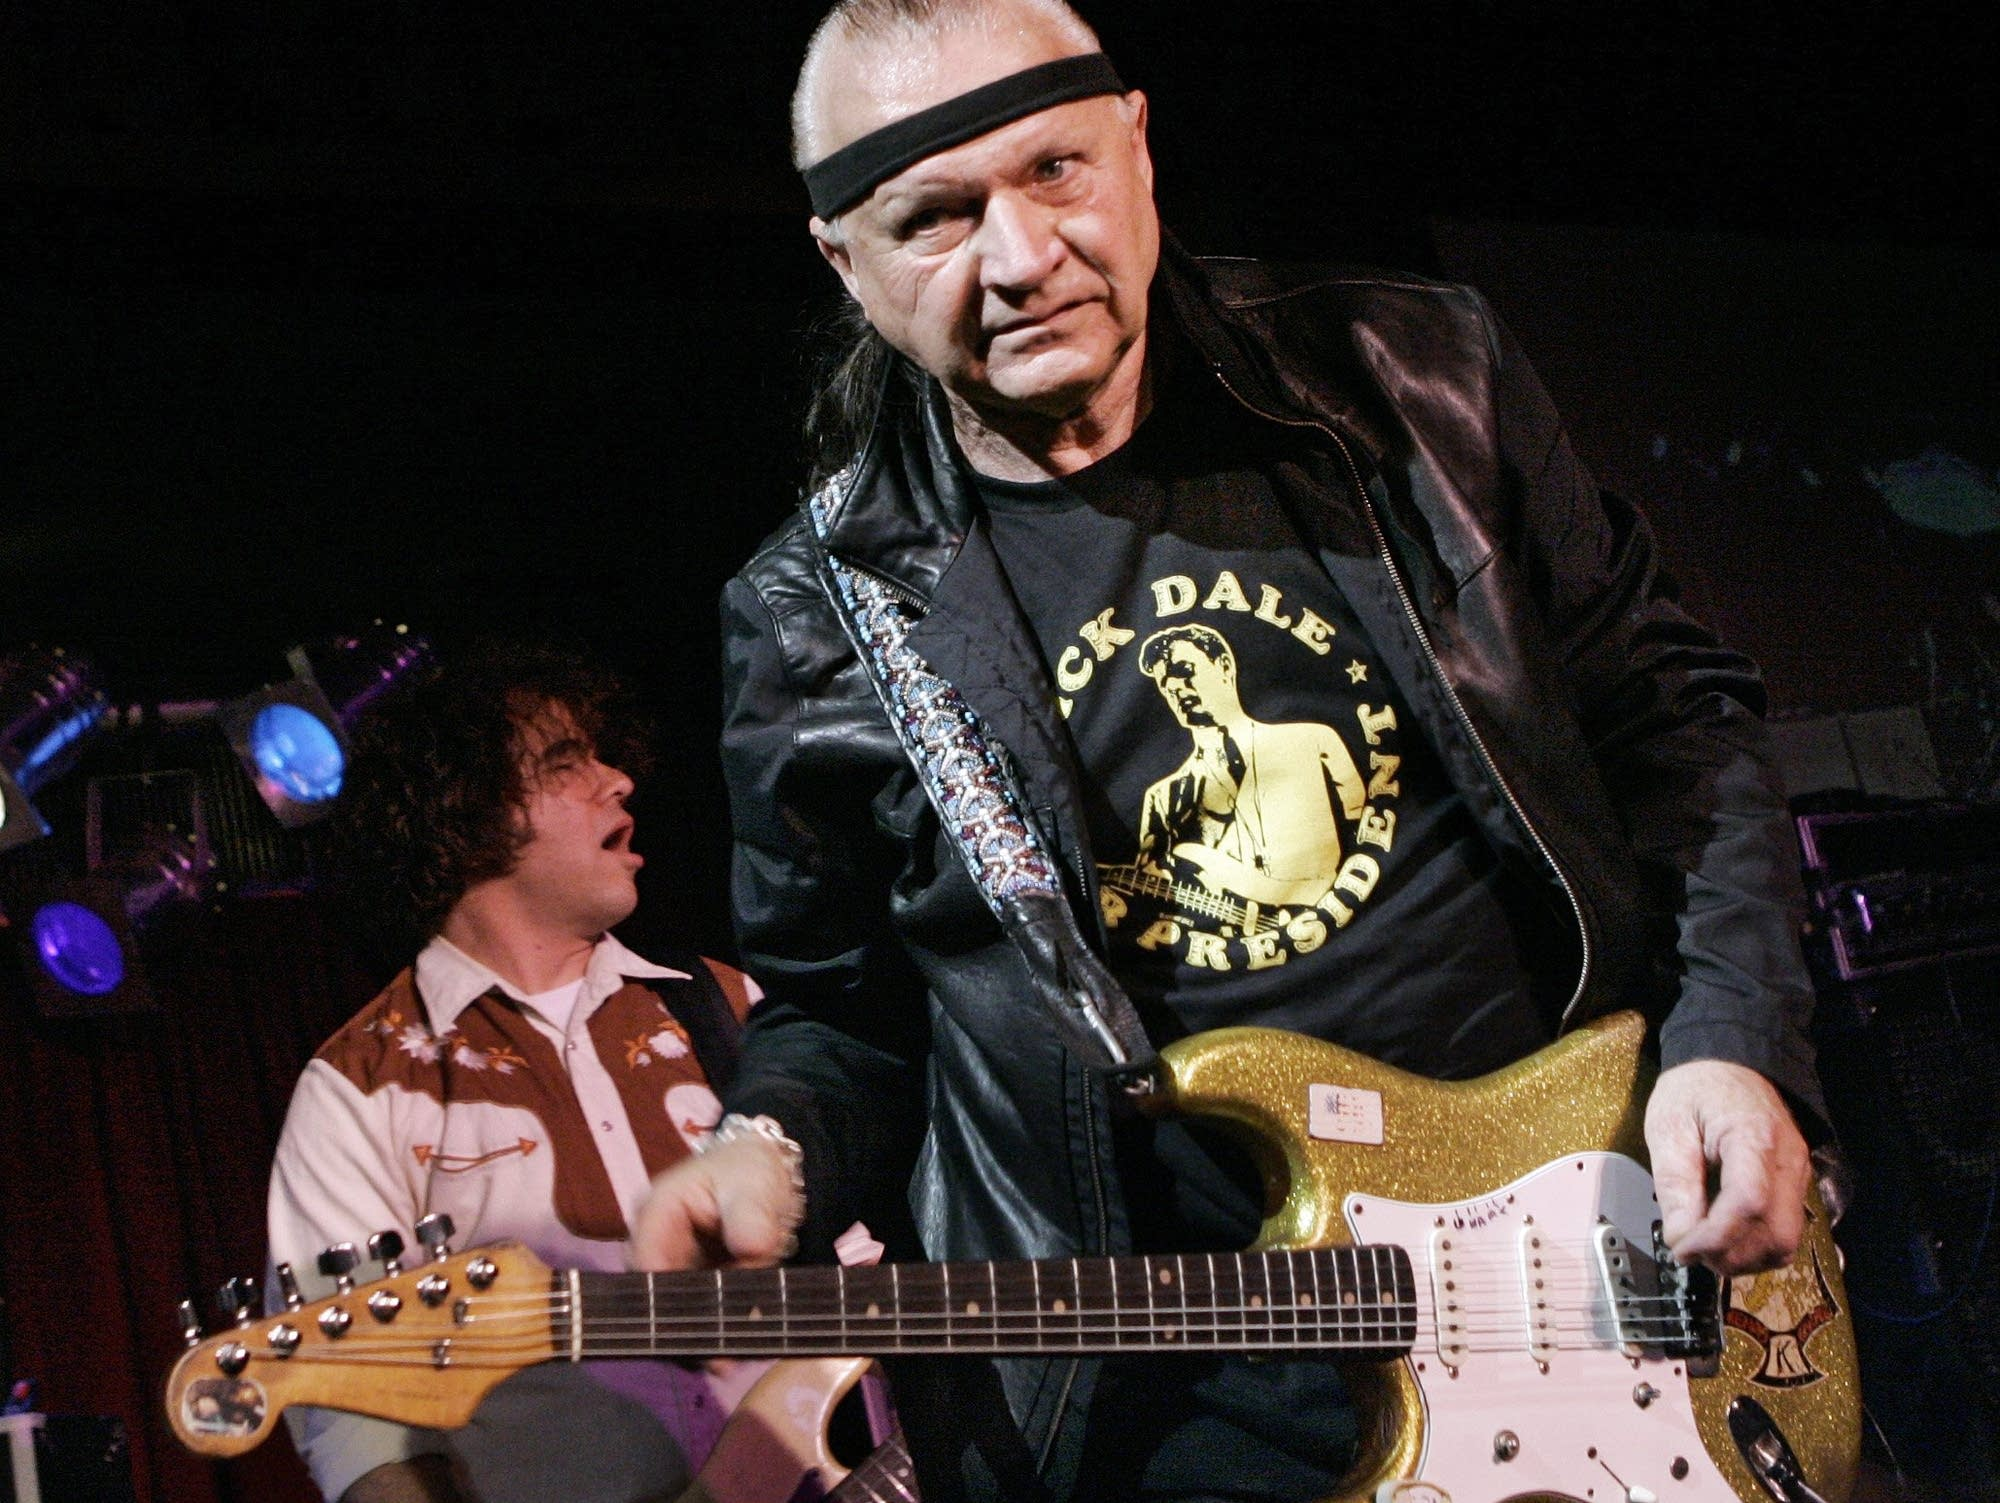 dick dale that Was